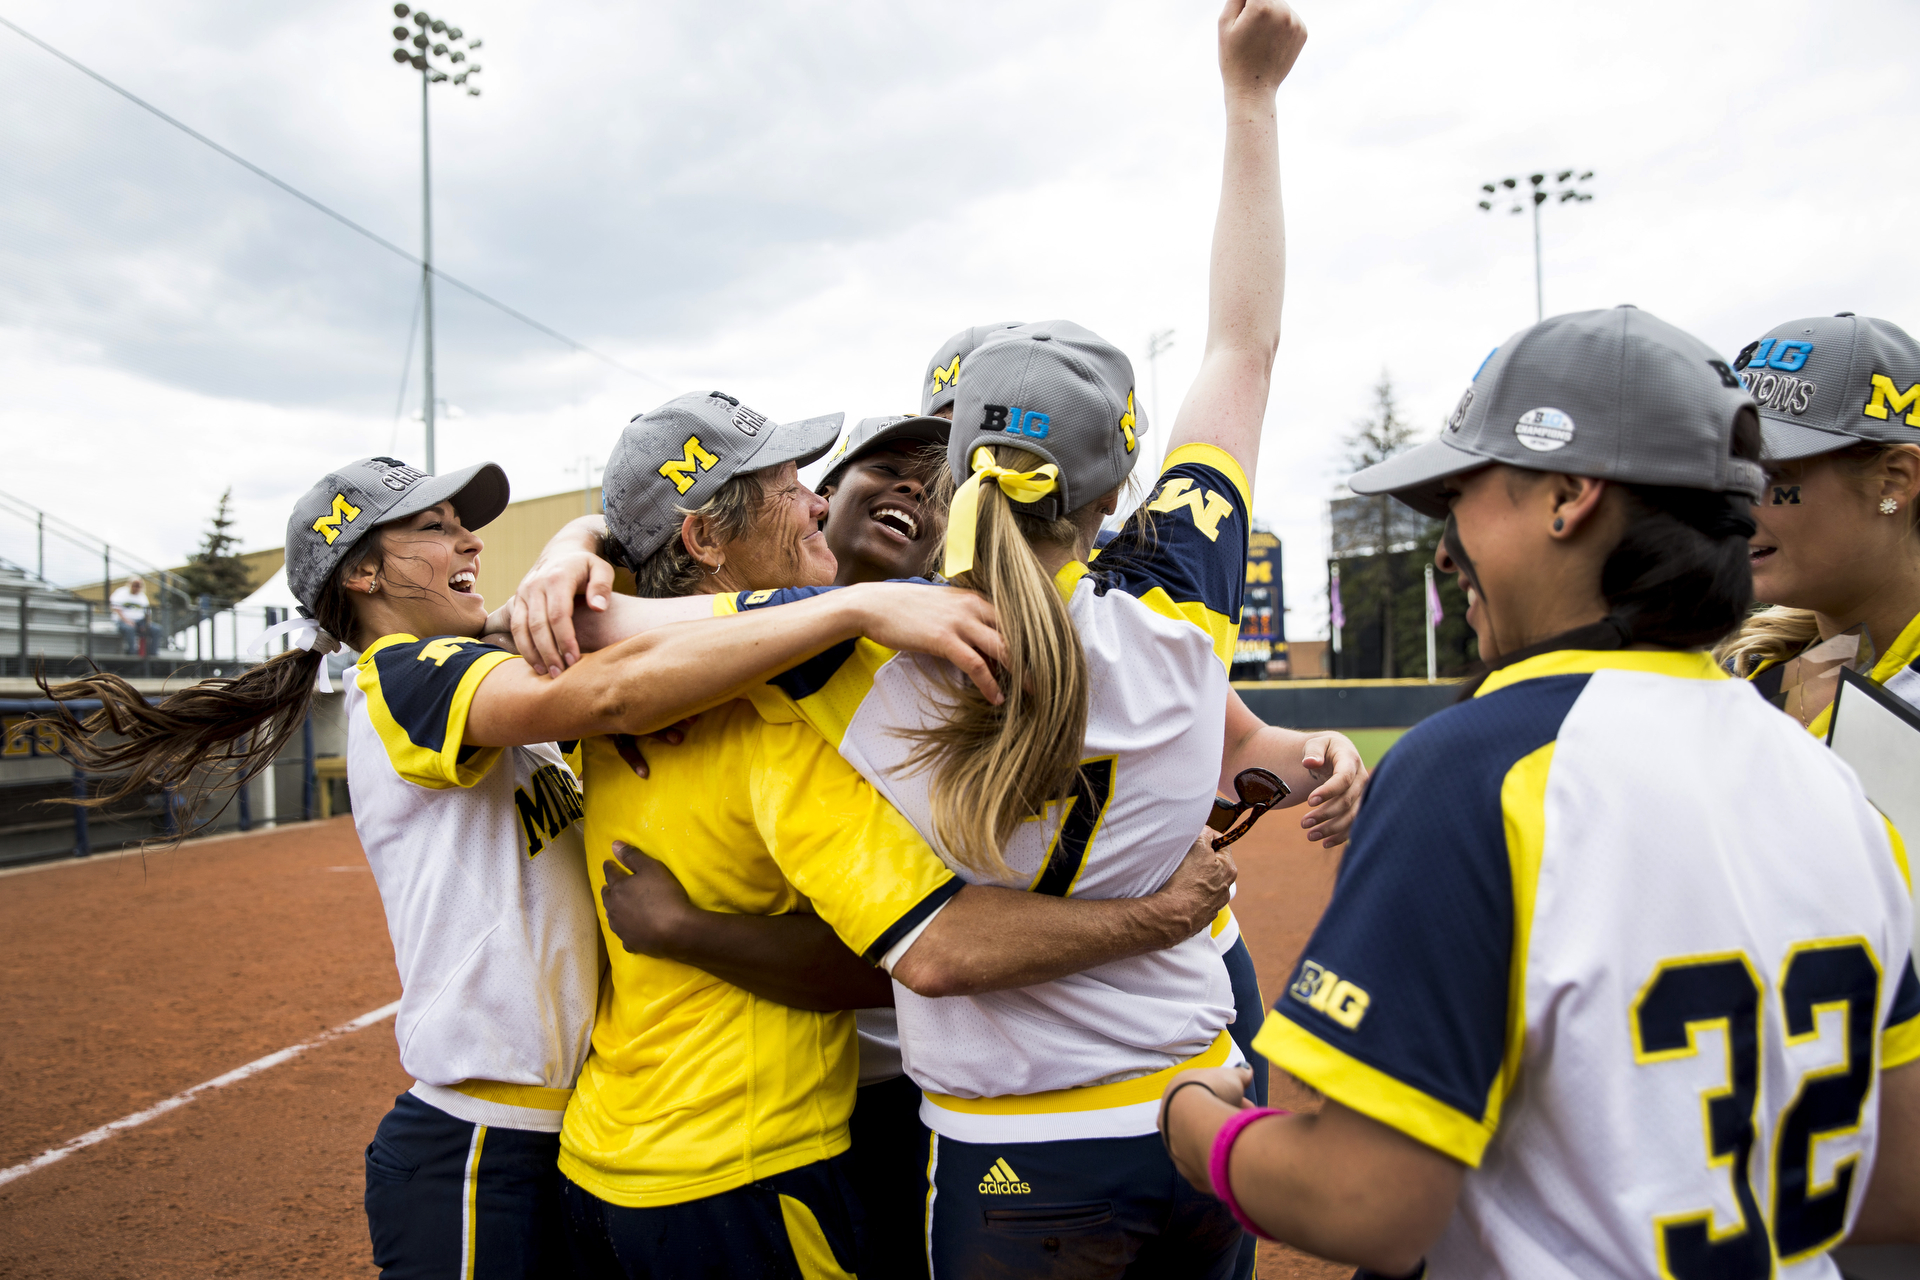 The Michigan Wolverine softball team plays Rutgers on May 8, 2016 in Ann Arbor, MI. (Photo by Taylor Baucom/The Players' Tribune)